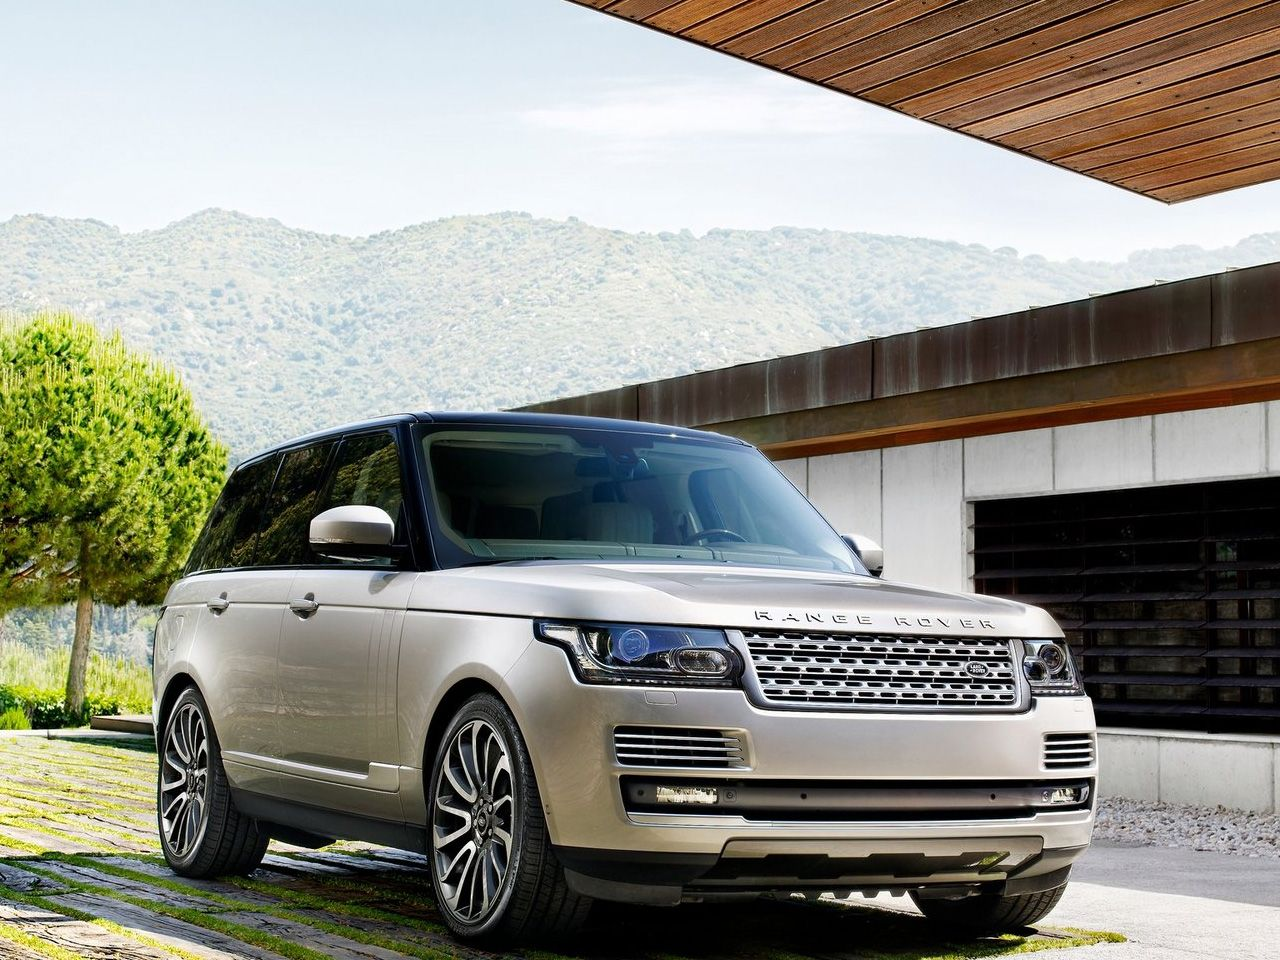 SouthwestEngines 2013 Land Rover Range Rover The new